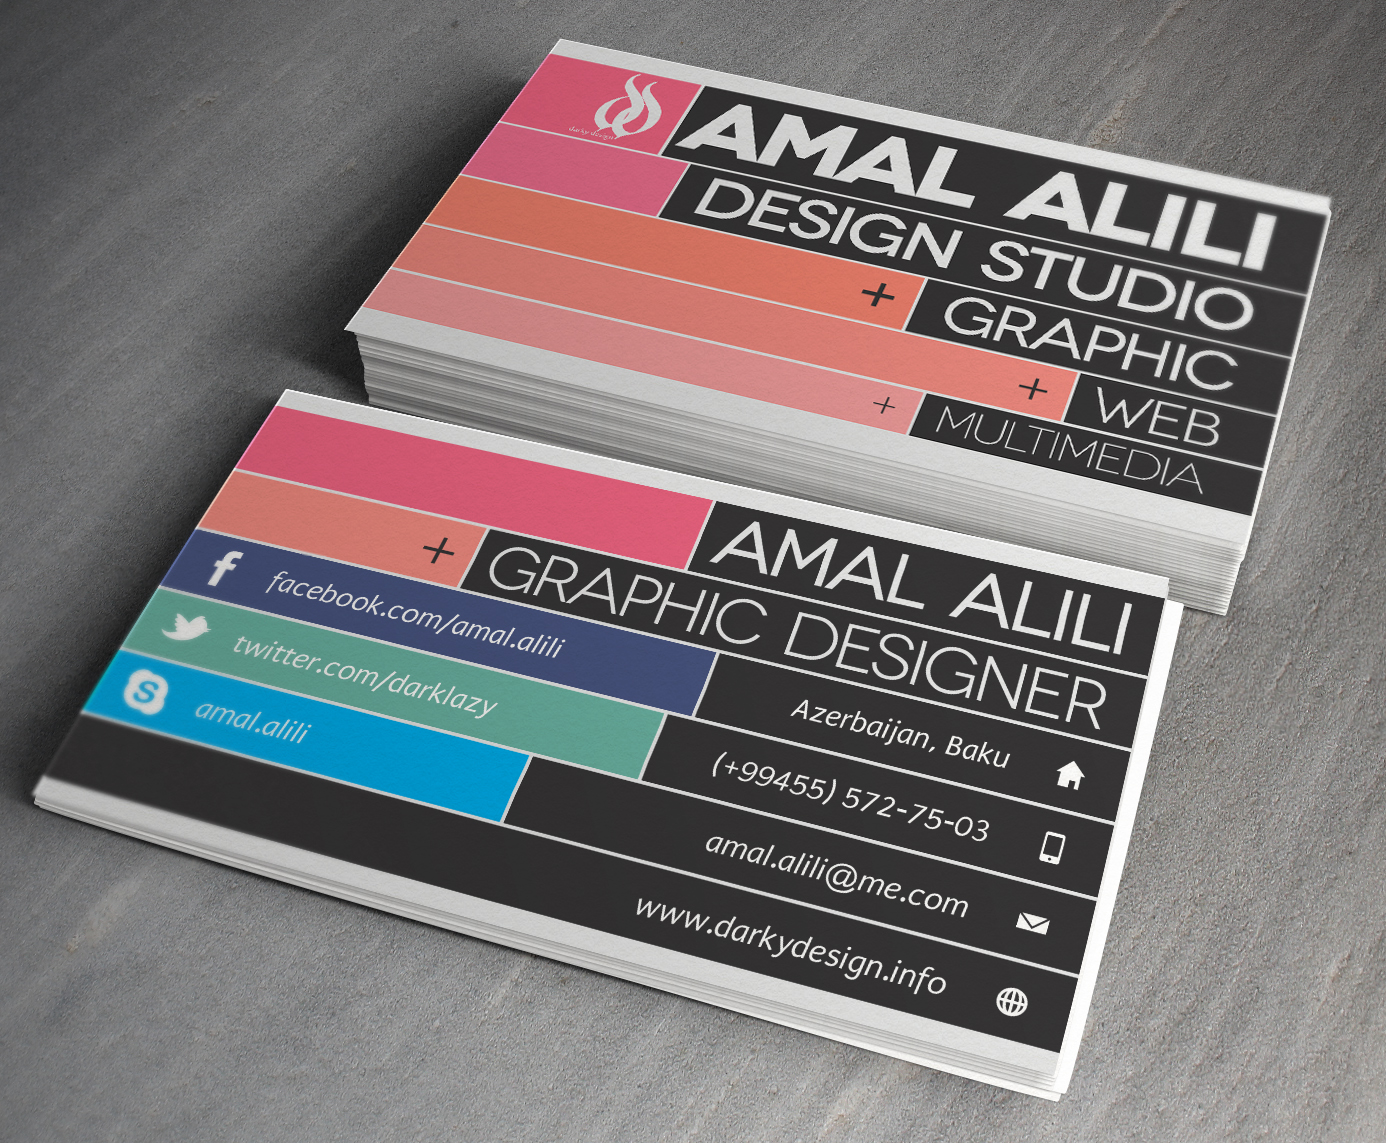 my business card by darklazy designs interfaces corporate my business